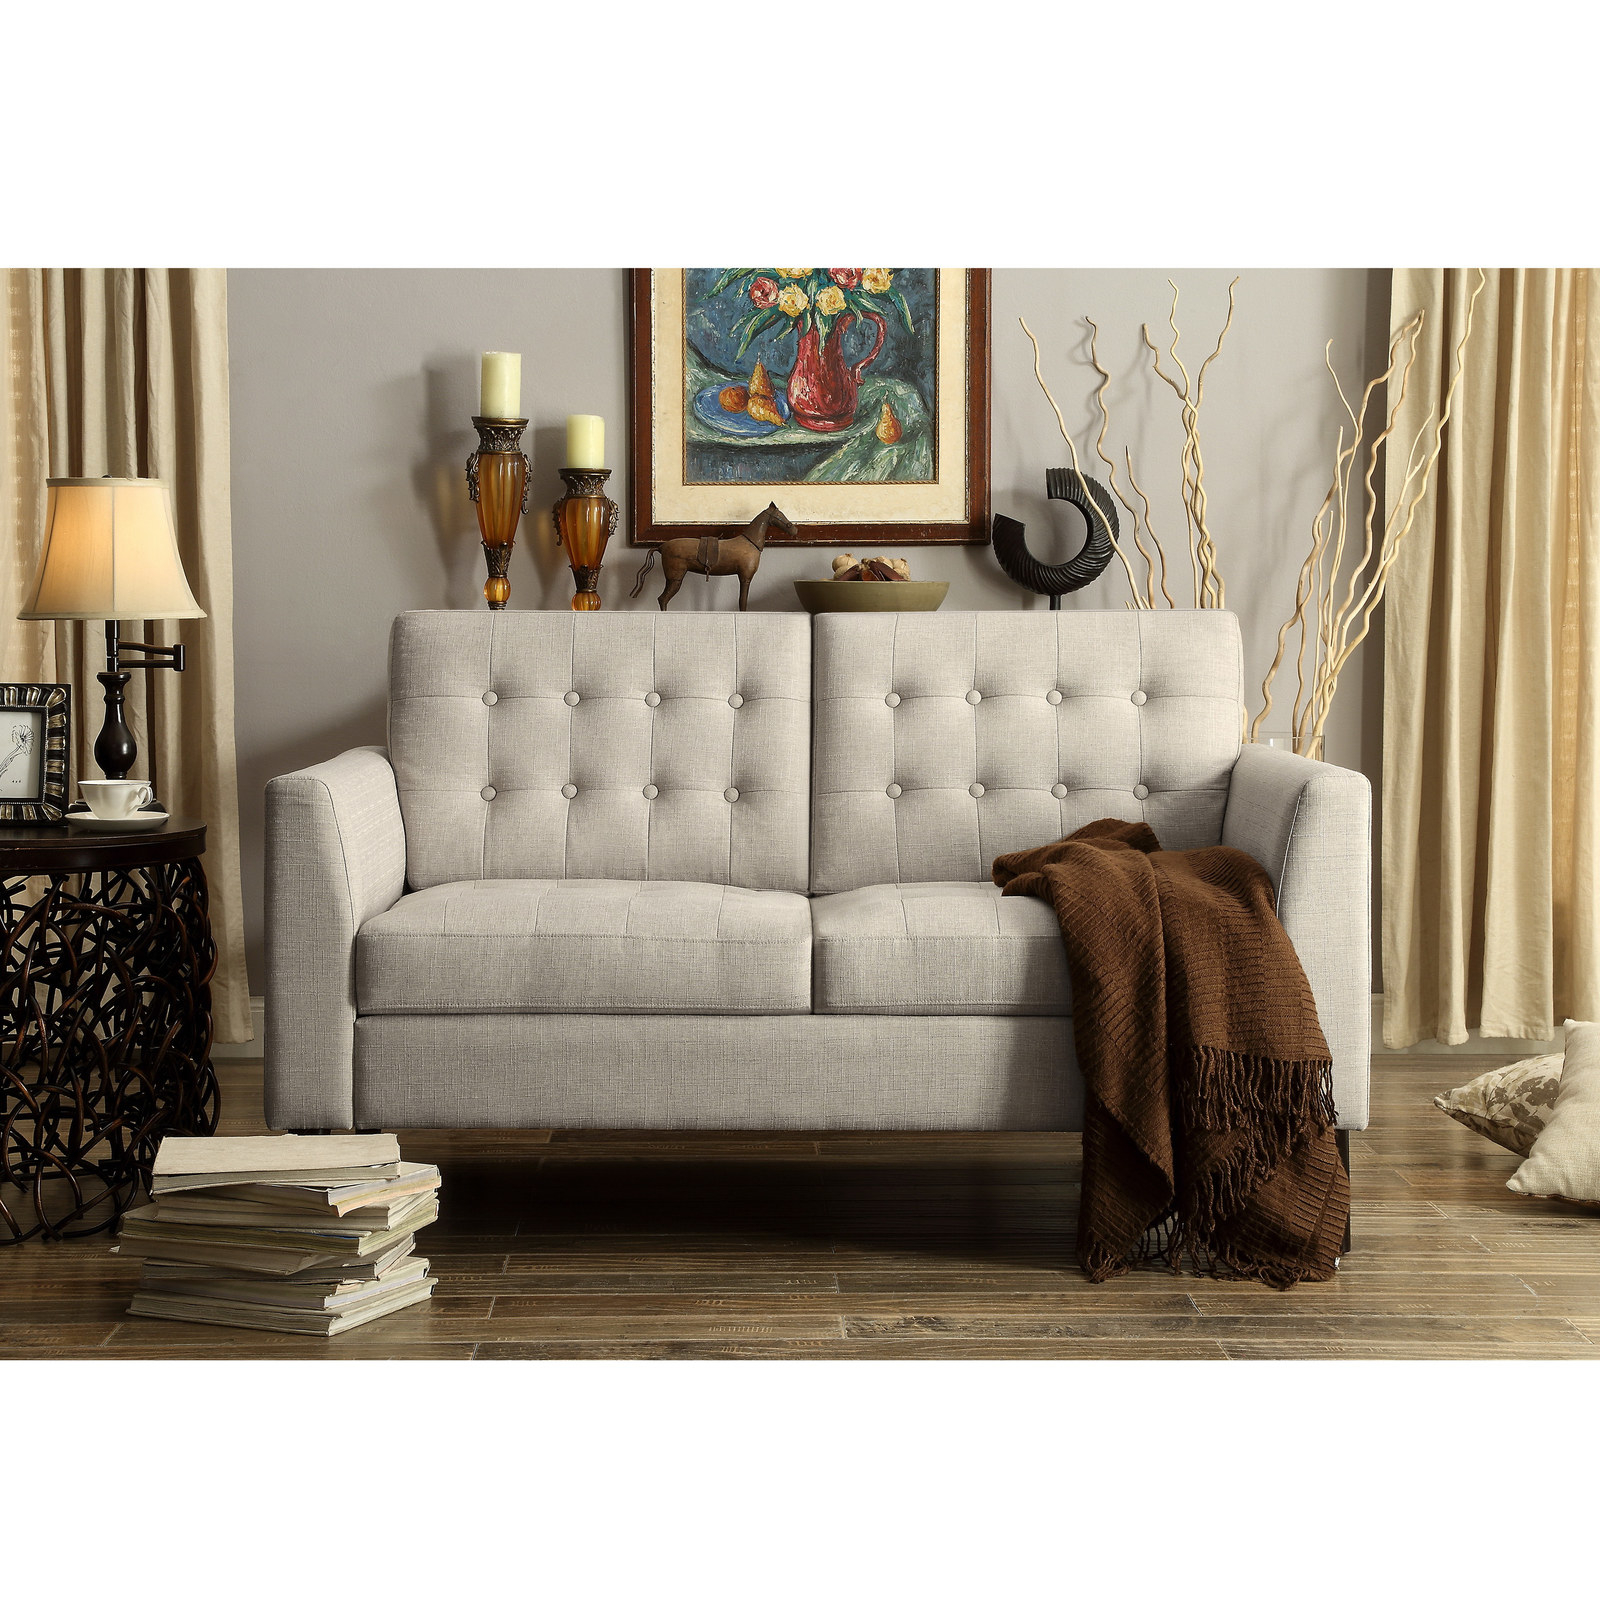 A Loveseat Thatu0027ll Make You Grab Your Softest Blanket, Your Favorite Book,  And A Steaming Cup Of Coffee.